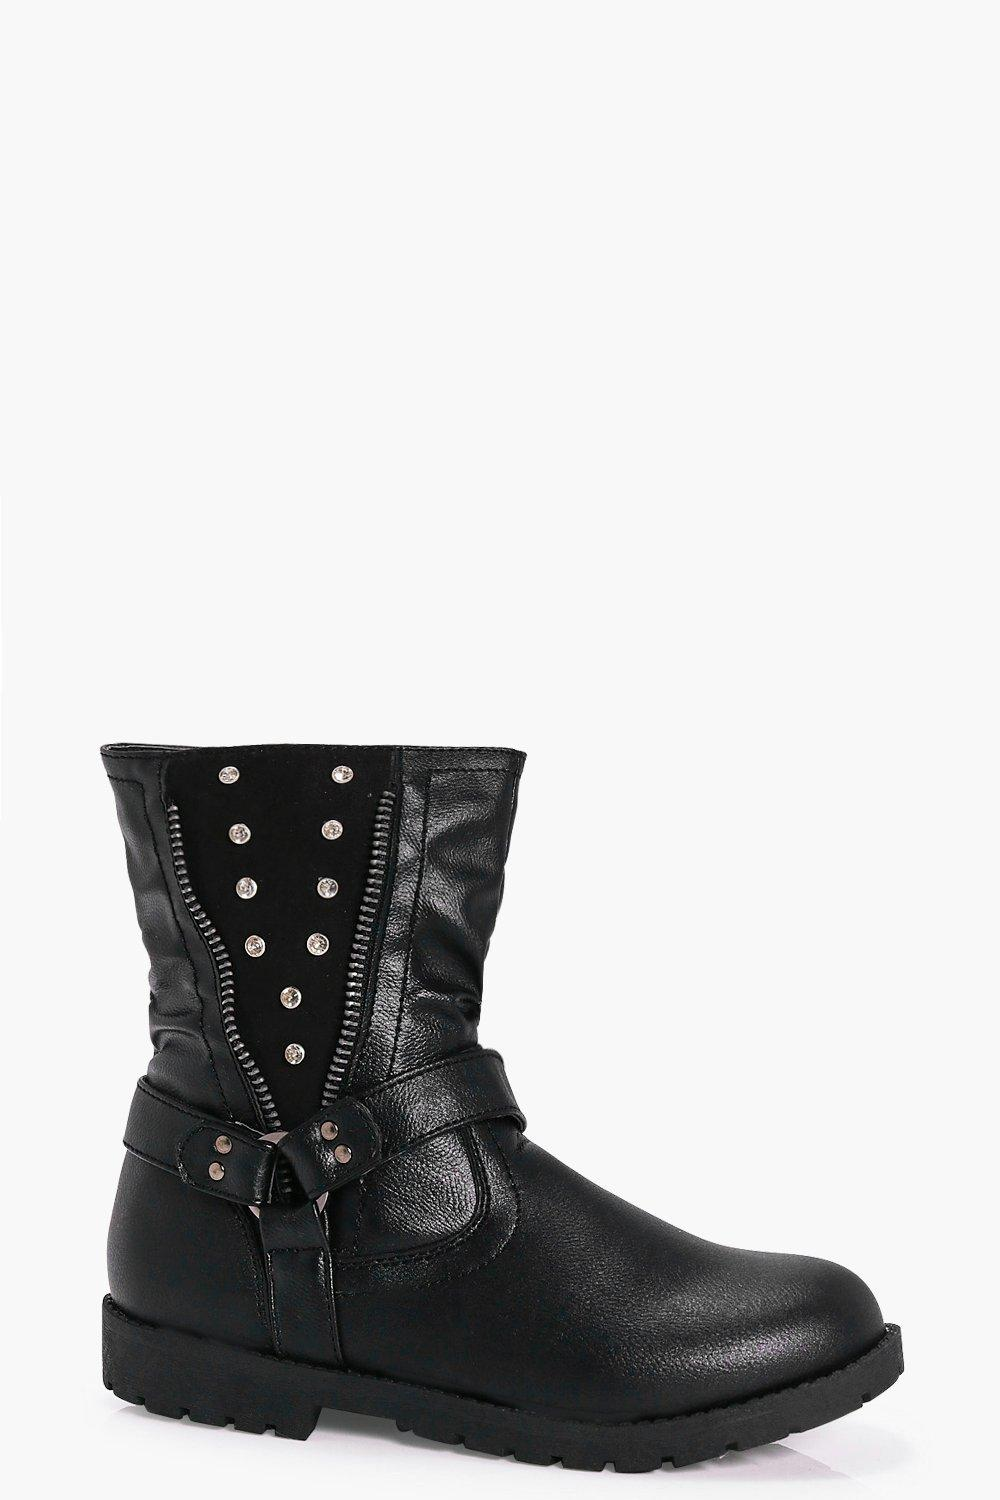 Diamante Trim Biker Boots  black